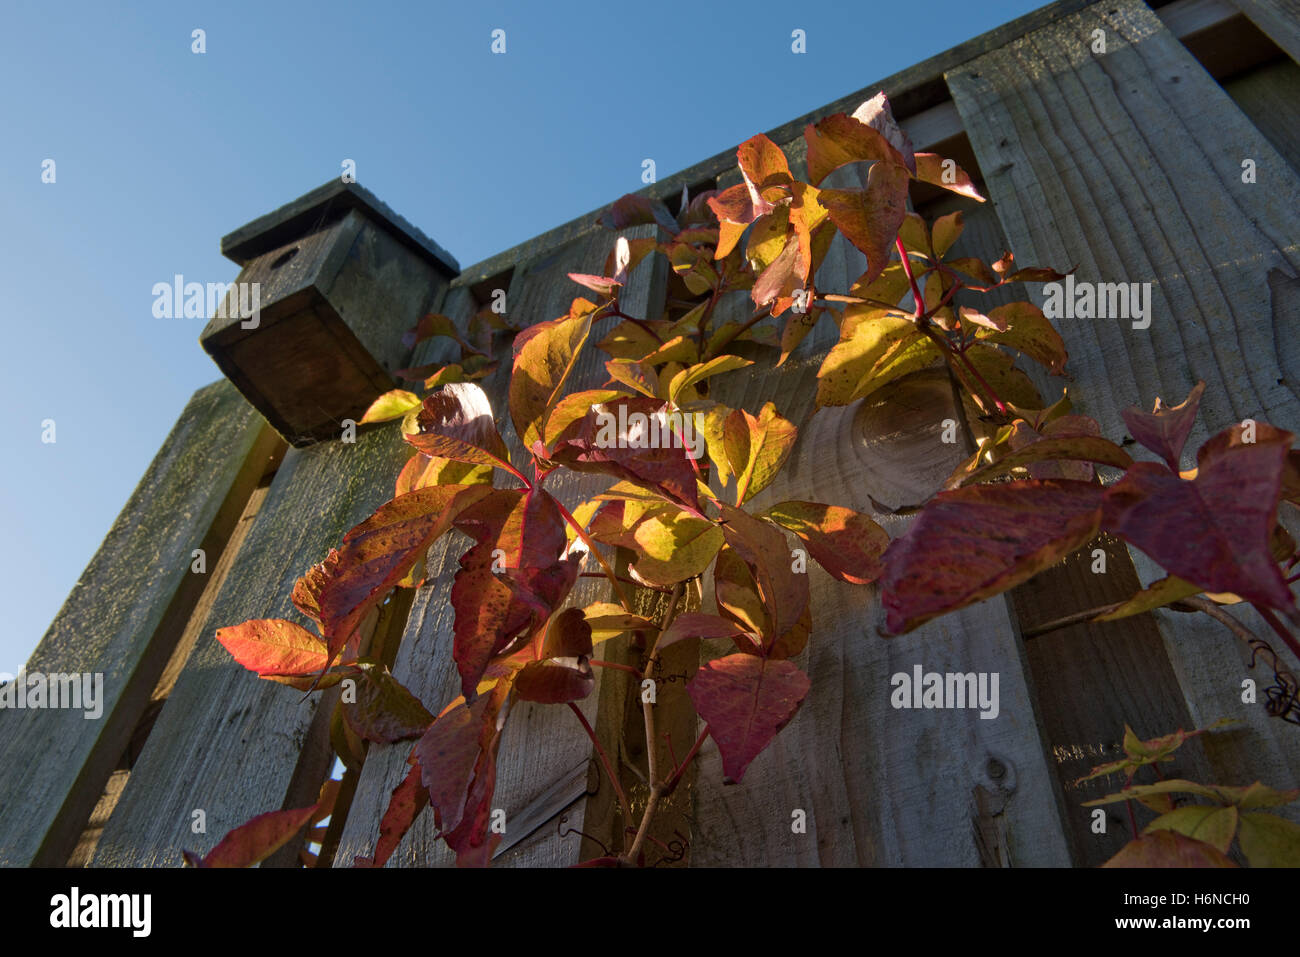 Creeper Fence Stockfotos & Creeper Fence Bilder - Alamy